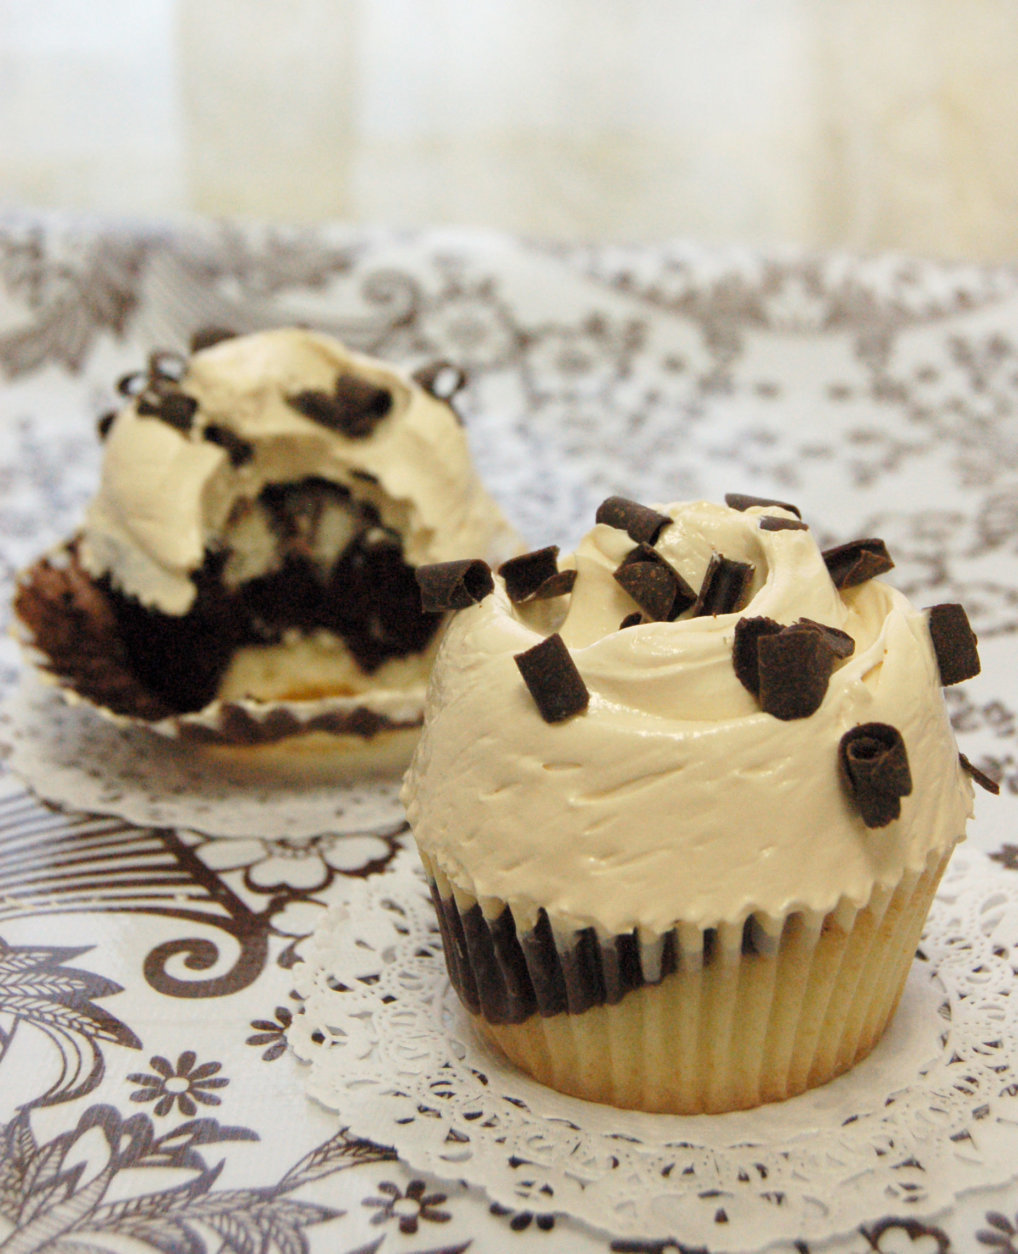 Magnolia Bakery, which opened its first location in Manhattan's West Village, is often credited with kicking off the cupcake craze. (Courtesy Magnolia Bakery)